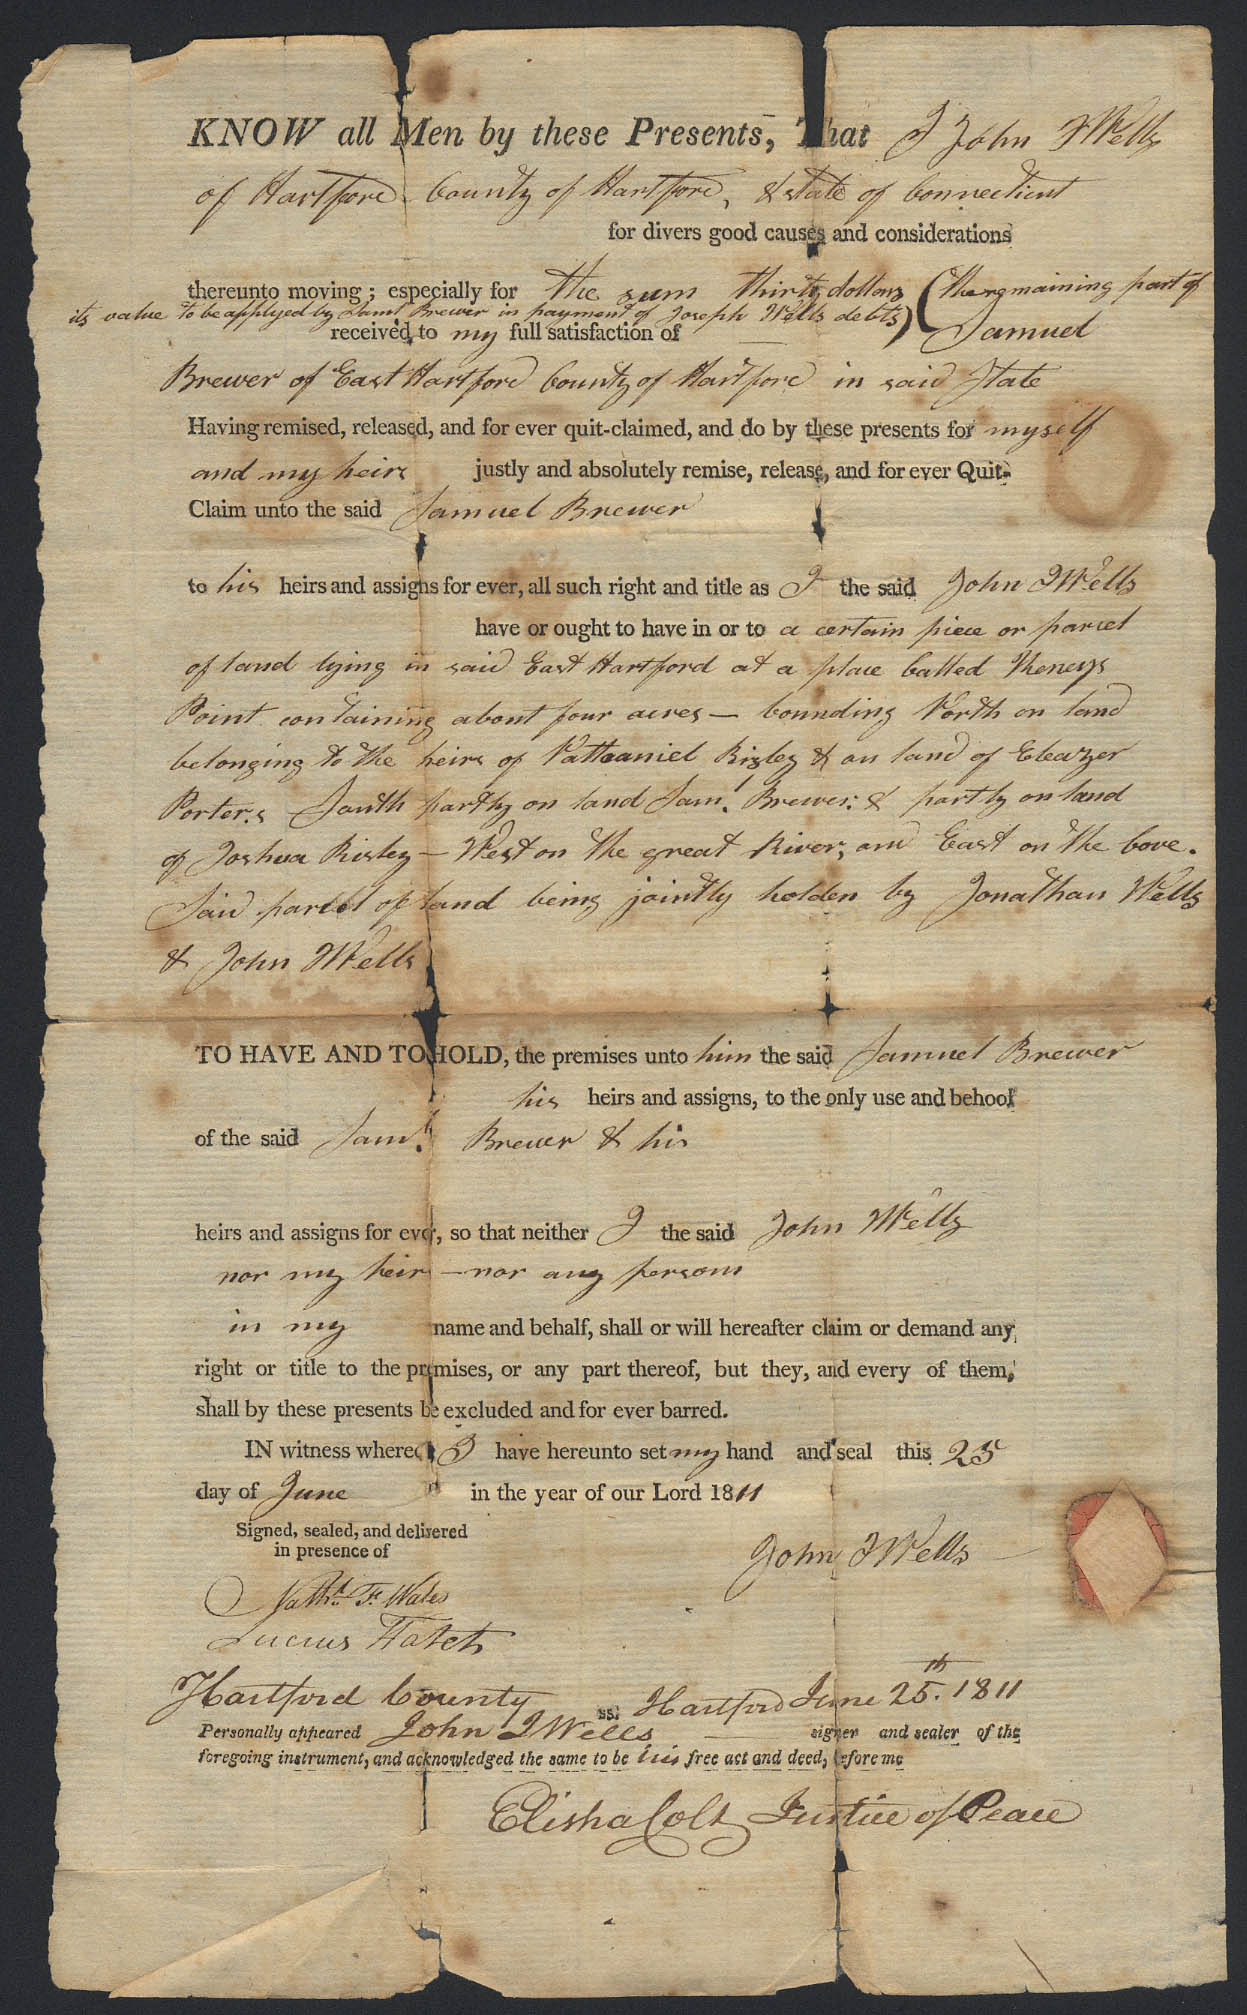 Image for John Wells to Samuel Brewer E Hartford CT deed 1811